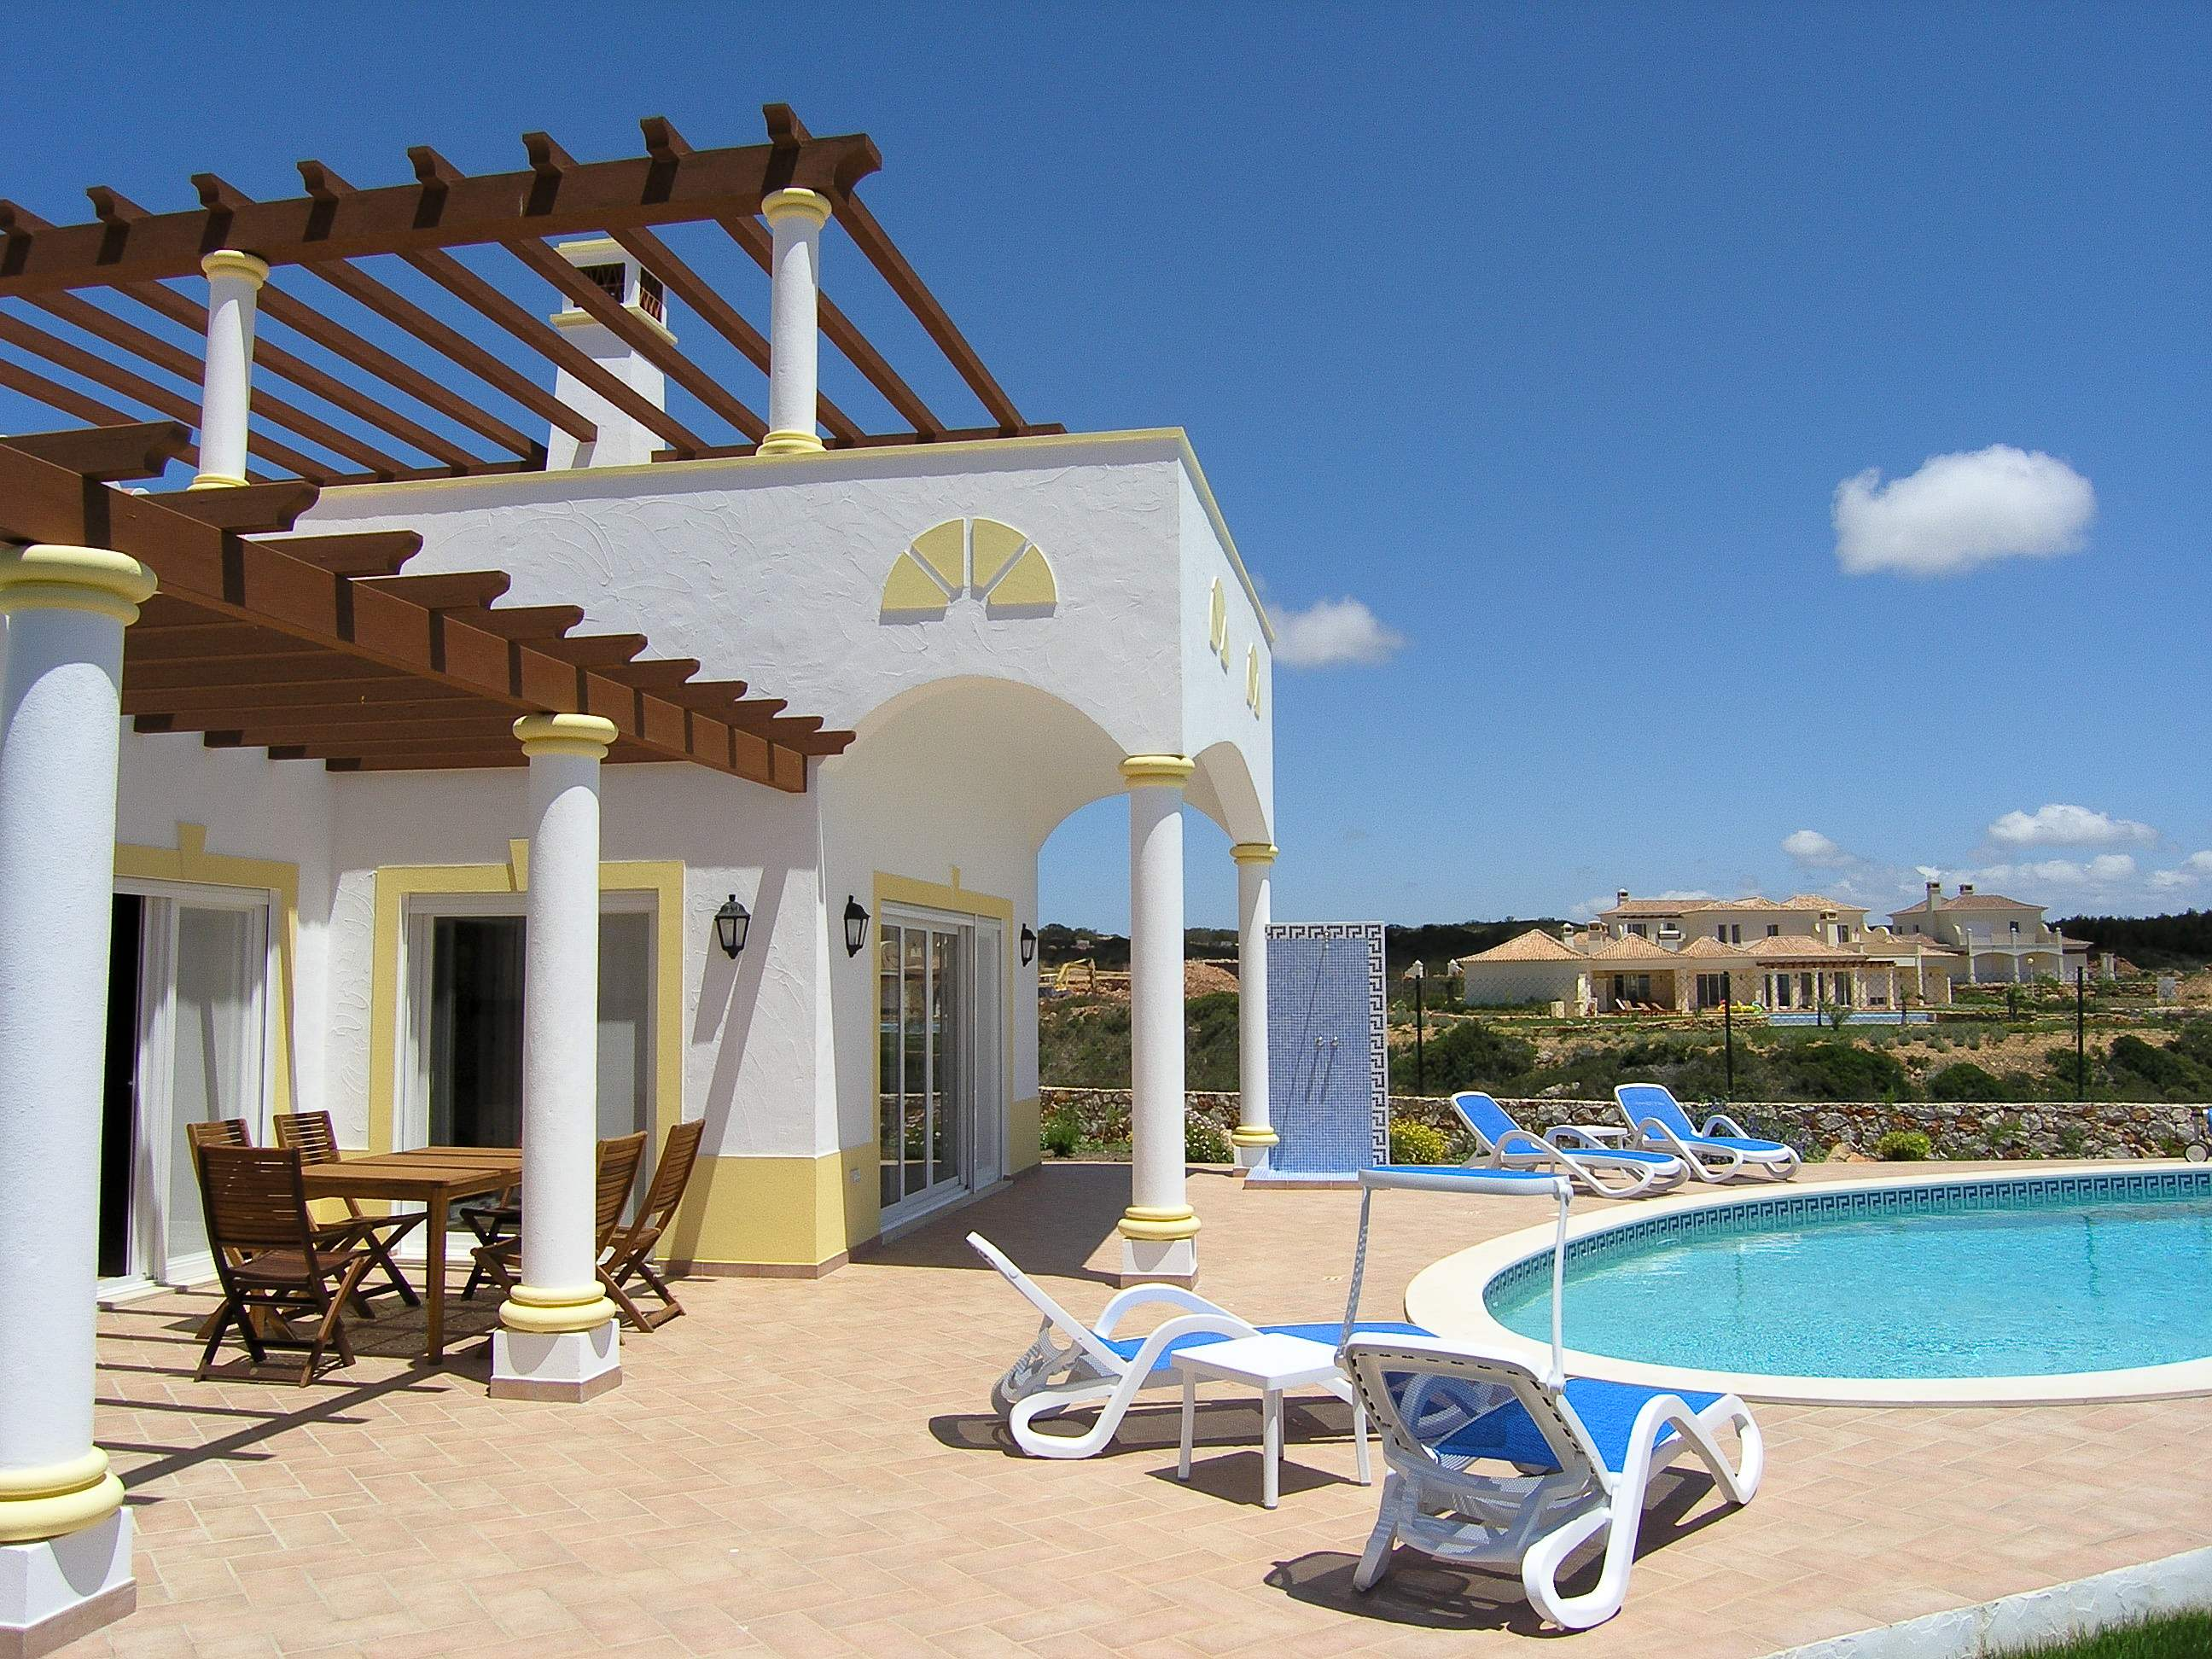 Martinhal Luxury Villa No.10, Three Bedroom Villa, 3 bedroom villa in Martinhal Sagres, Algarve Photo #4